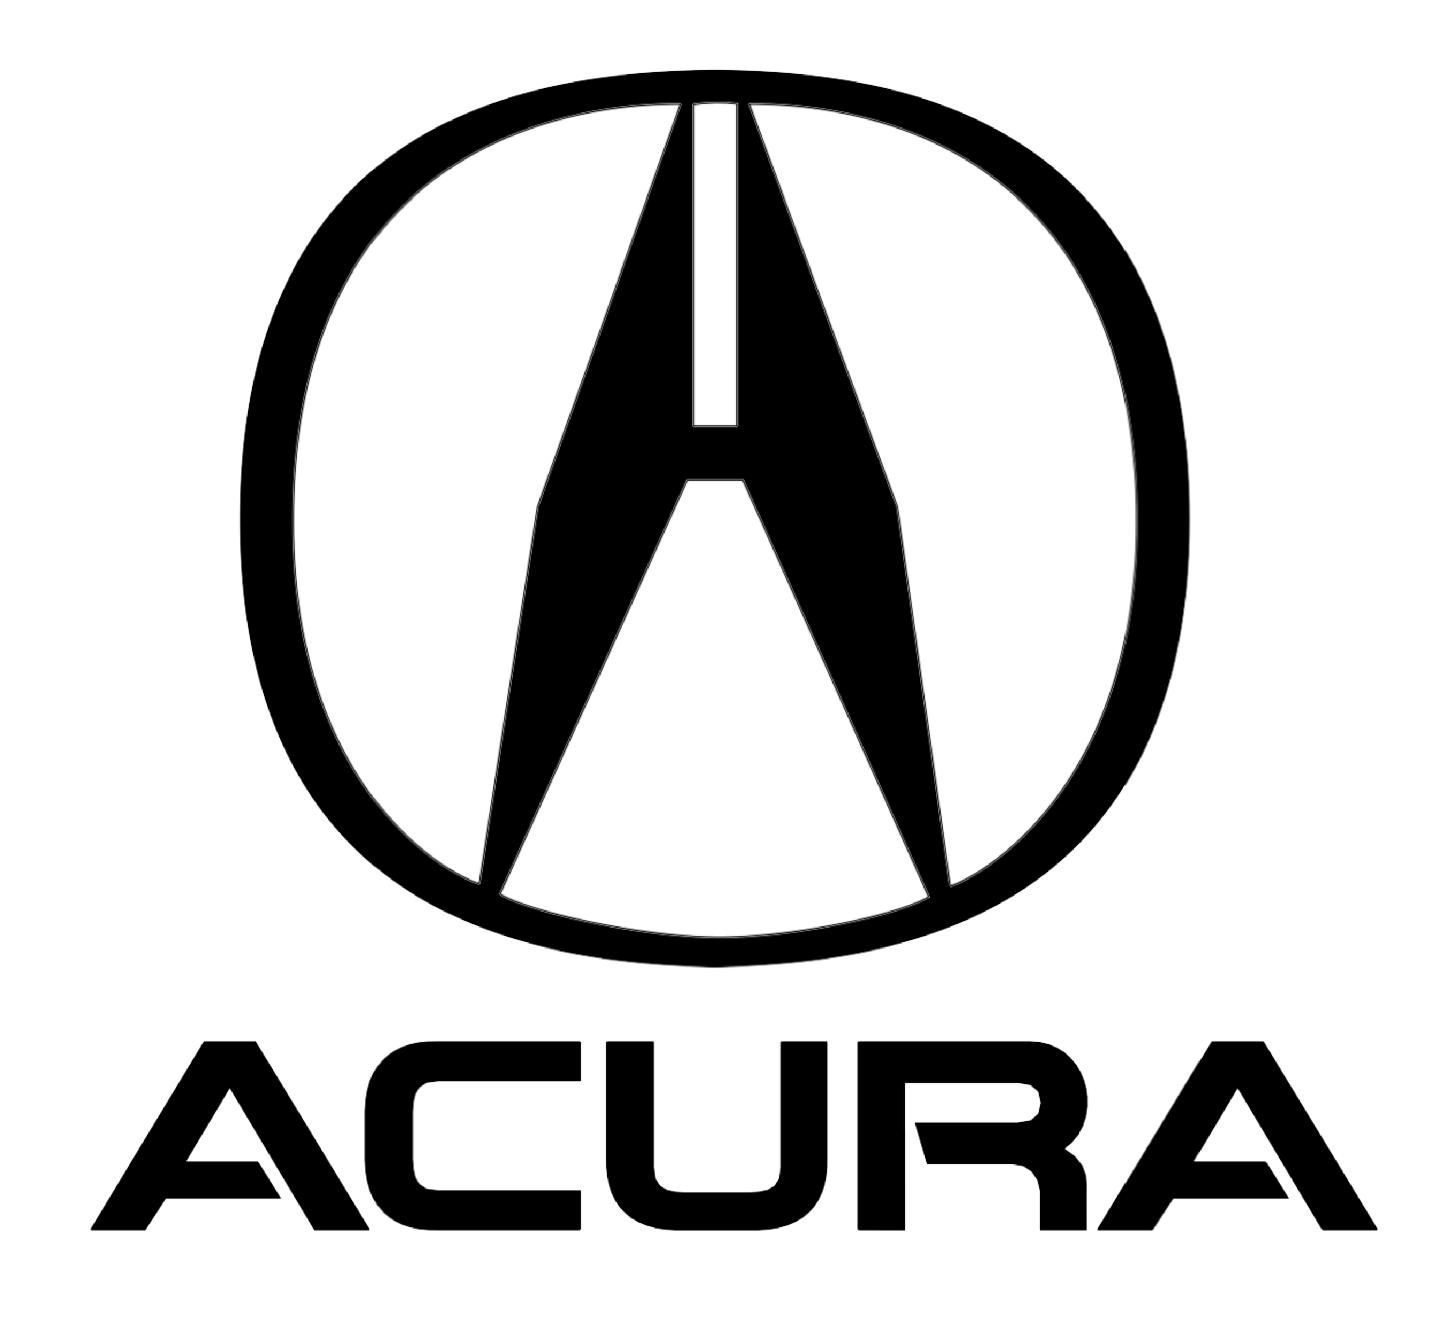 Acura Logo Acura Car Symbol Meaning And History